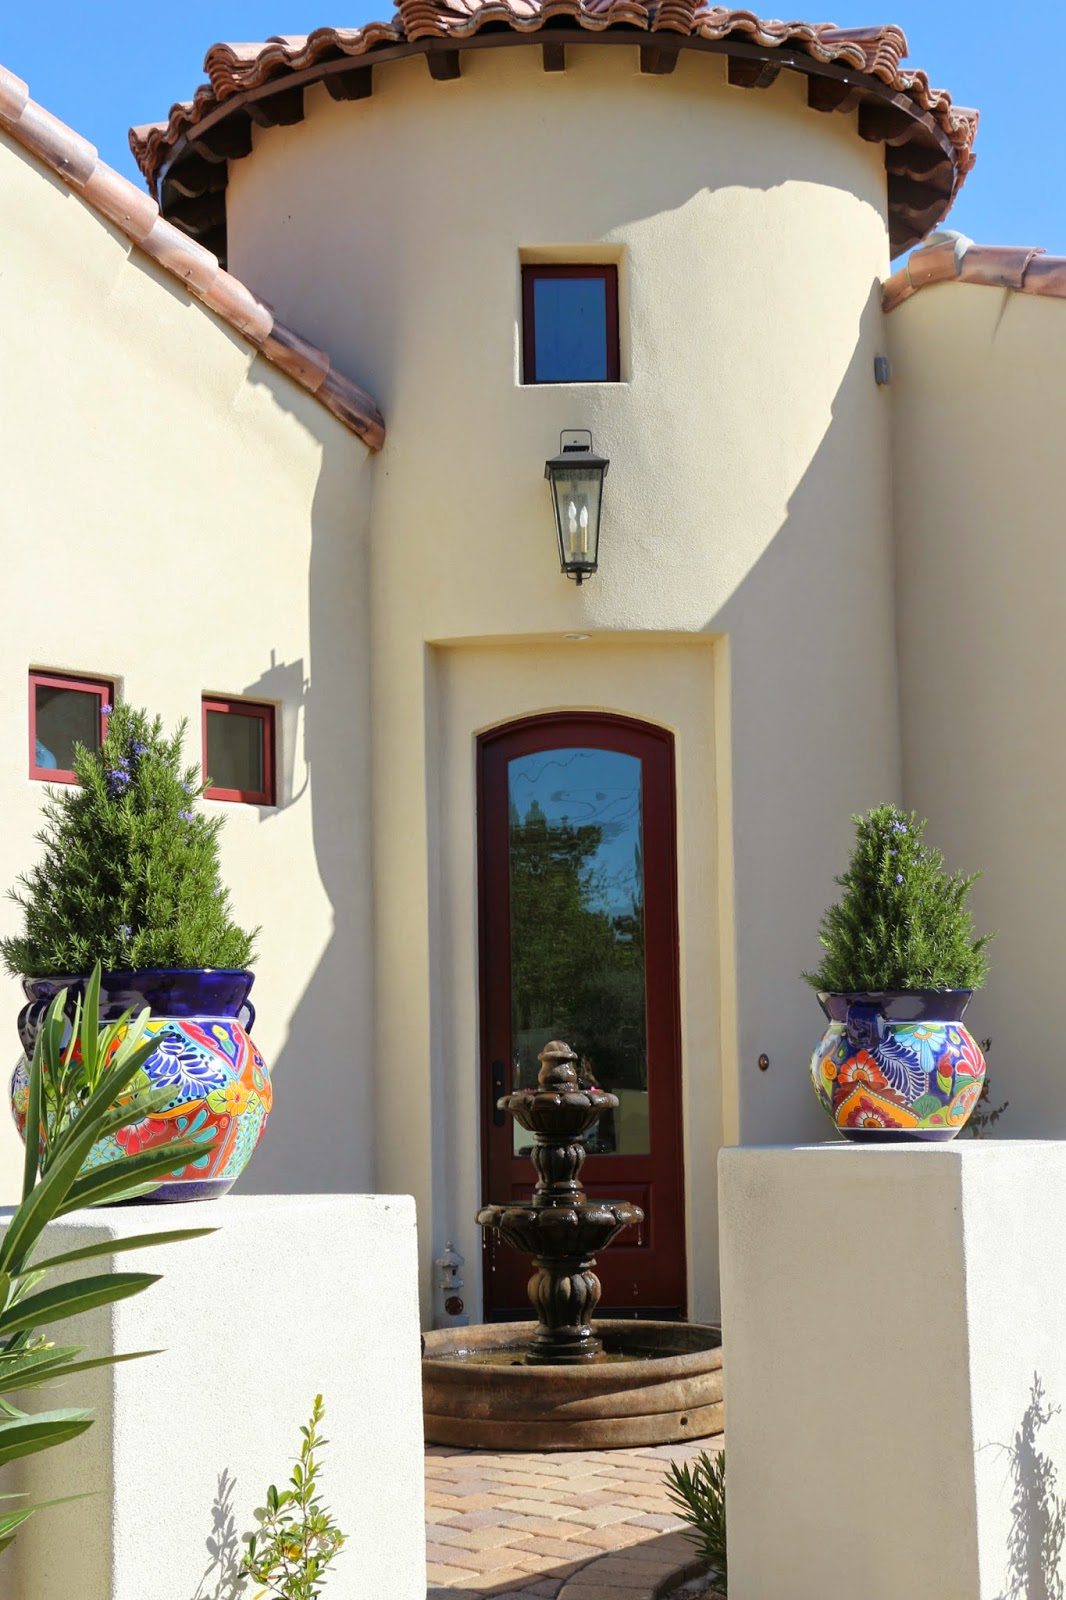 spanish style house, spanish fountain, al's espana fountain, espana fountain, garden fountain, talavera pottery, turret, spanish colonial architecture, spanish architecture